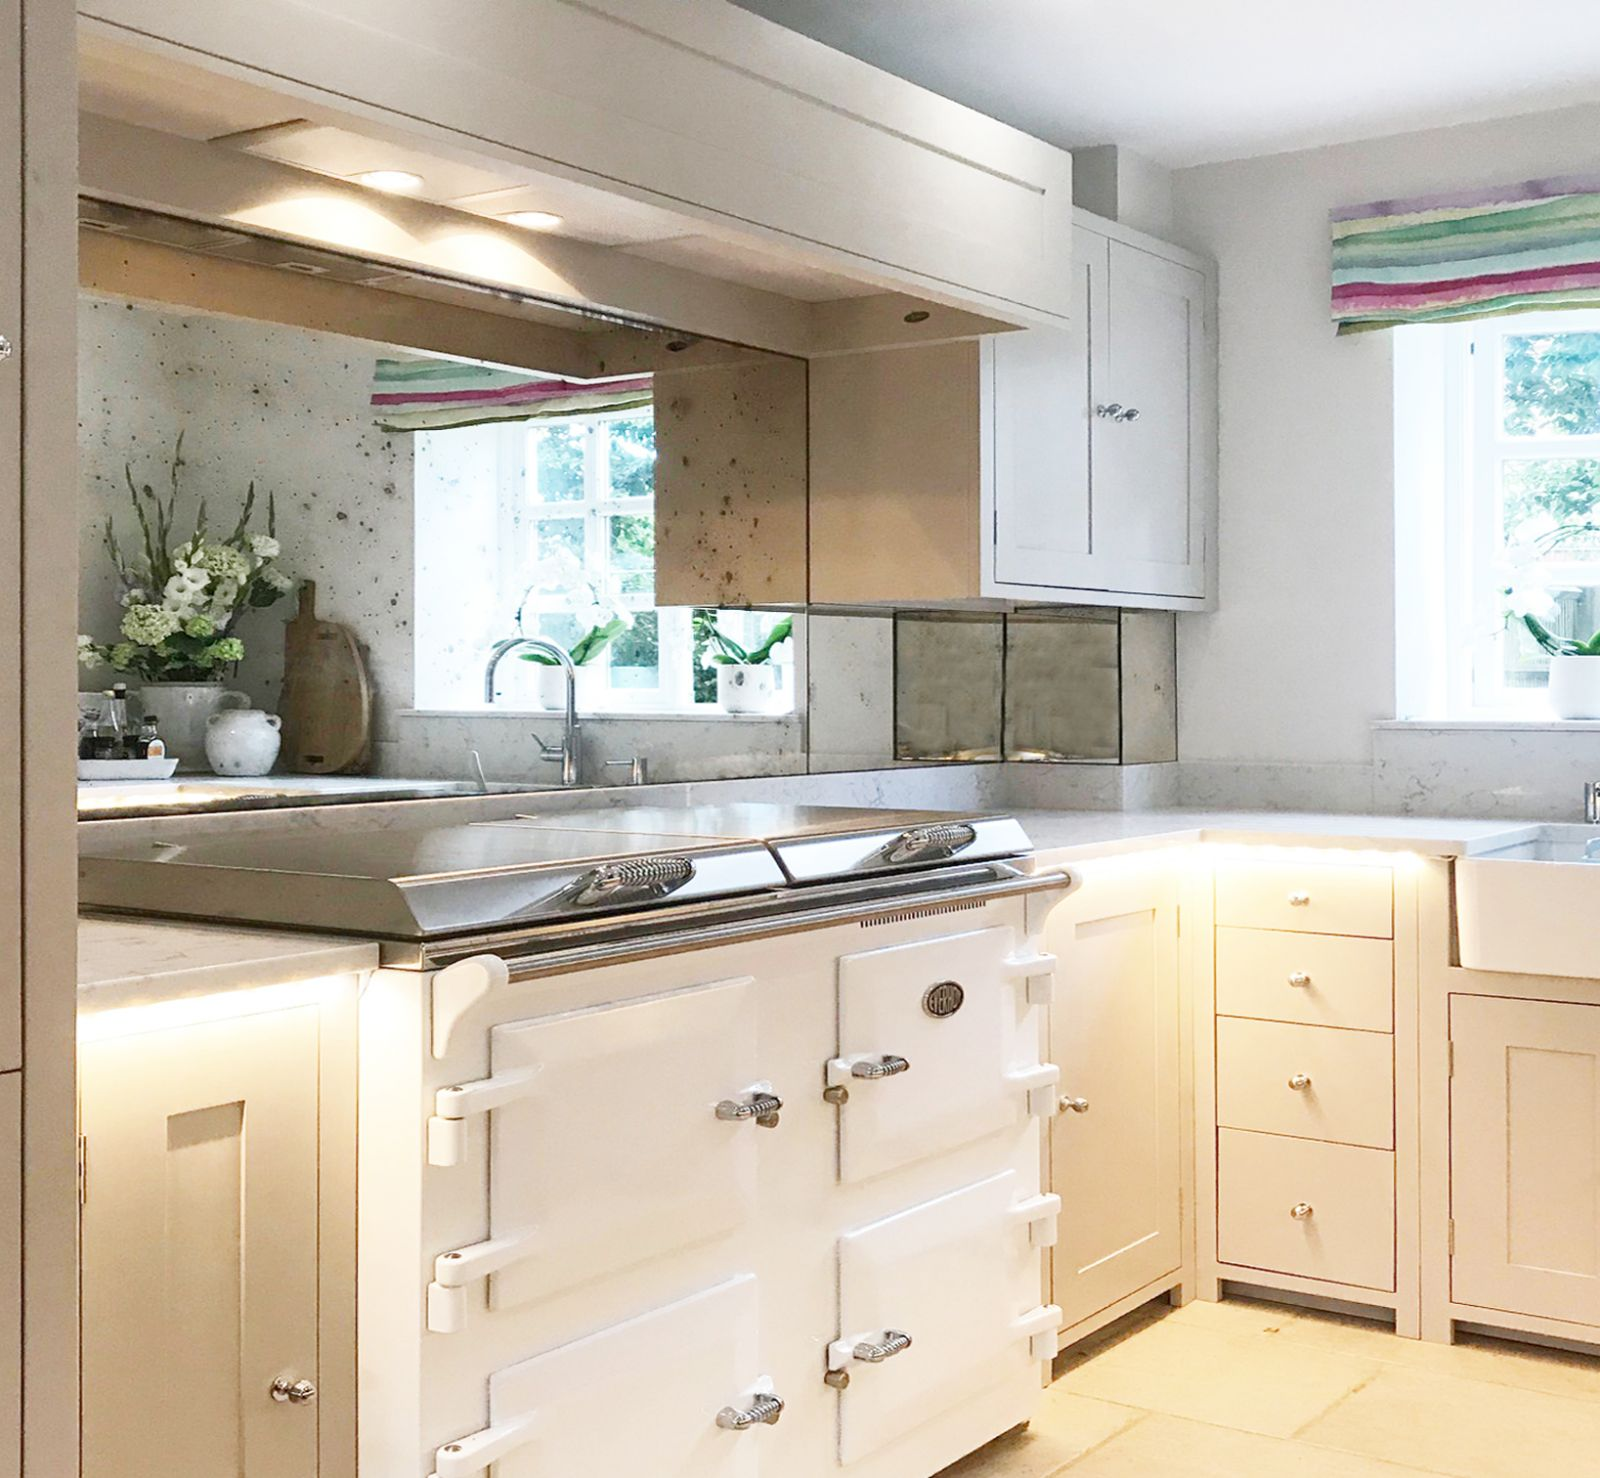 Antique Vintage Mirror Splashbacks Give You Kitchen A